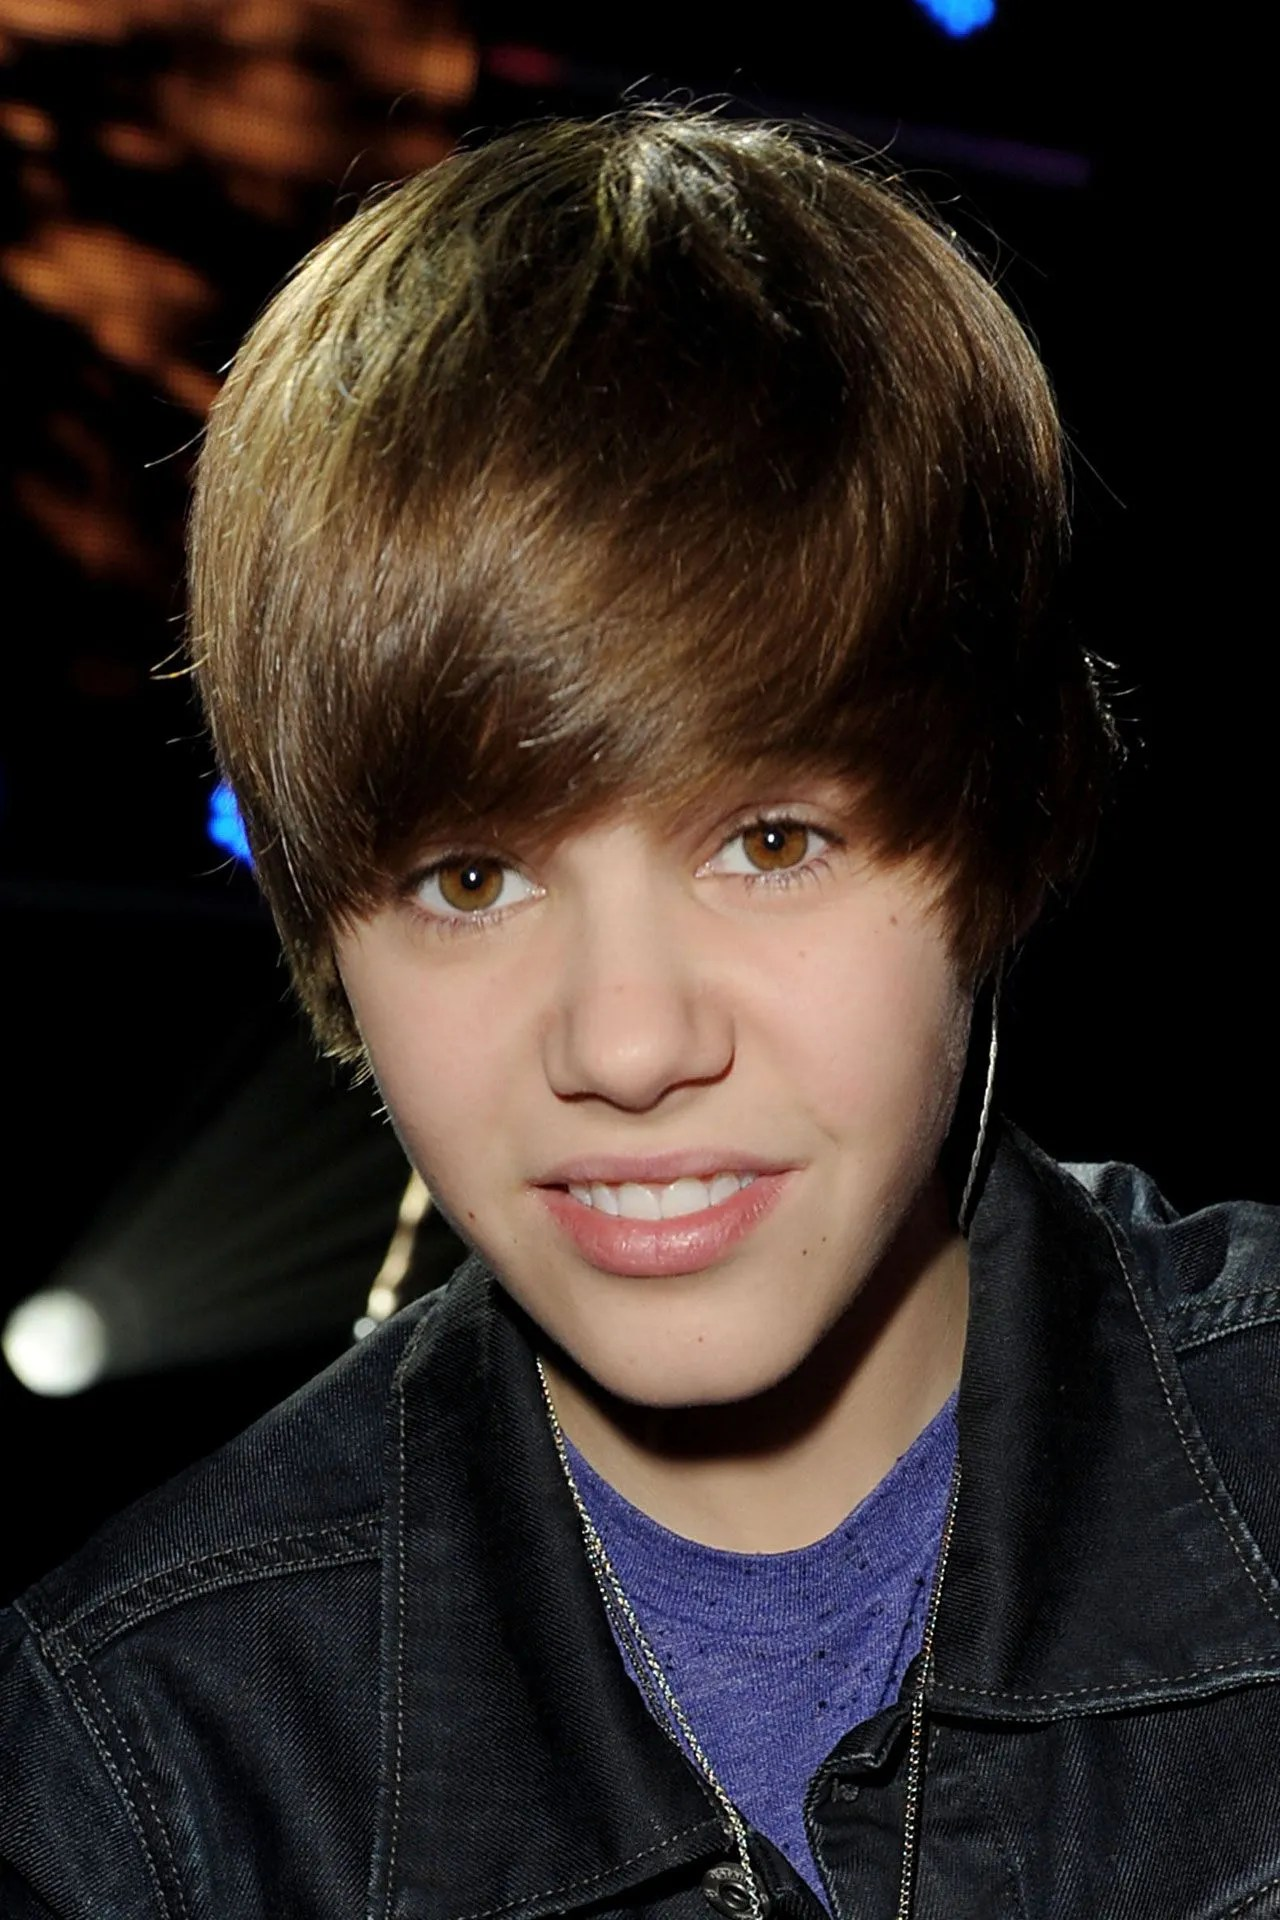 Justin Bieber Old Haircut : justin, bieber, haircut, Justin, Bieber, Hair:, Grooming, Evolution, British